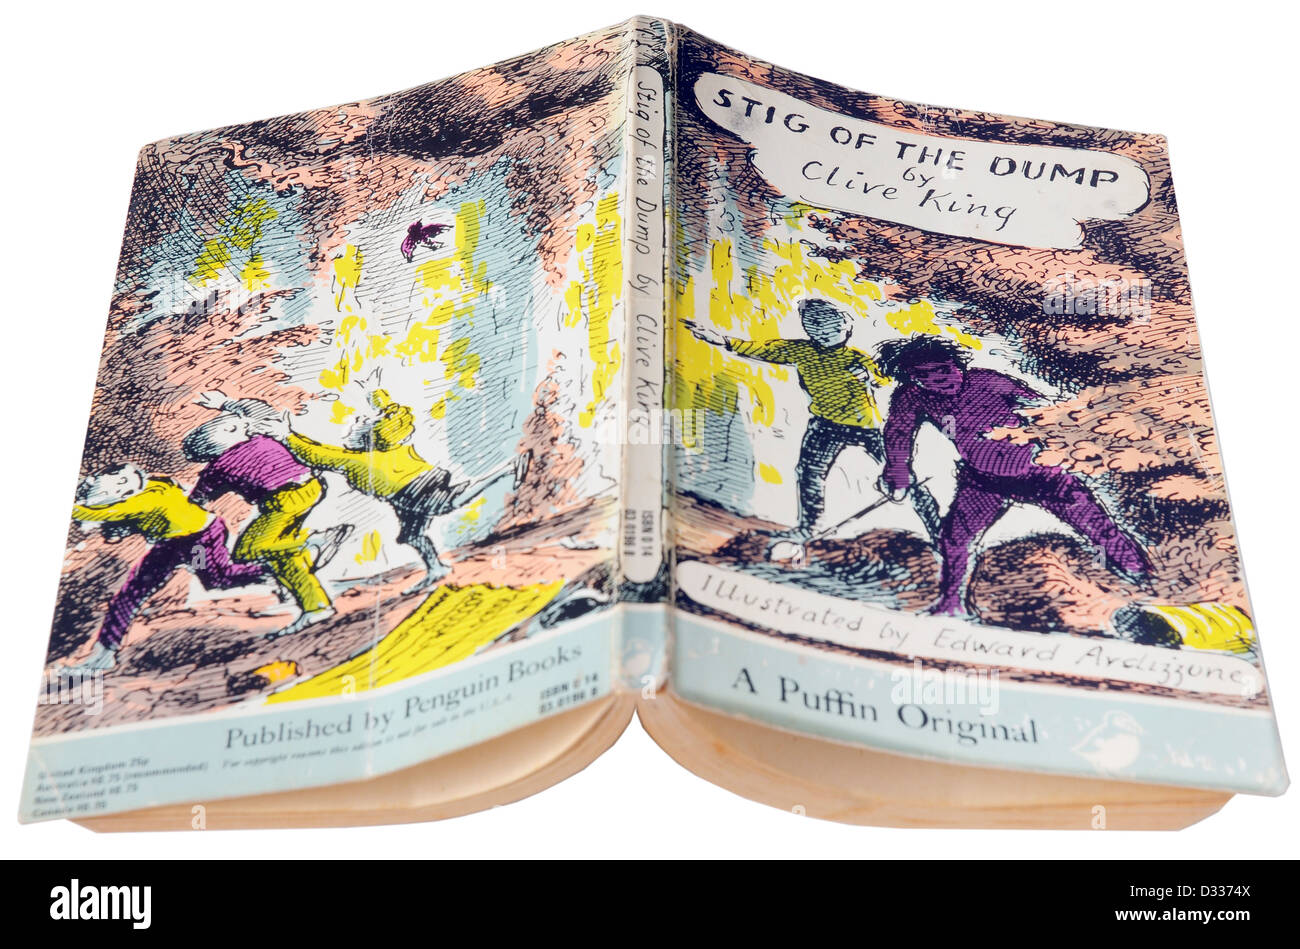 Stig of the Dump by Clive King - Stock Image